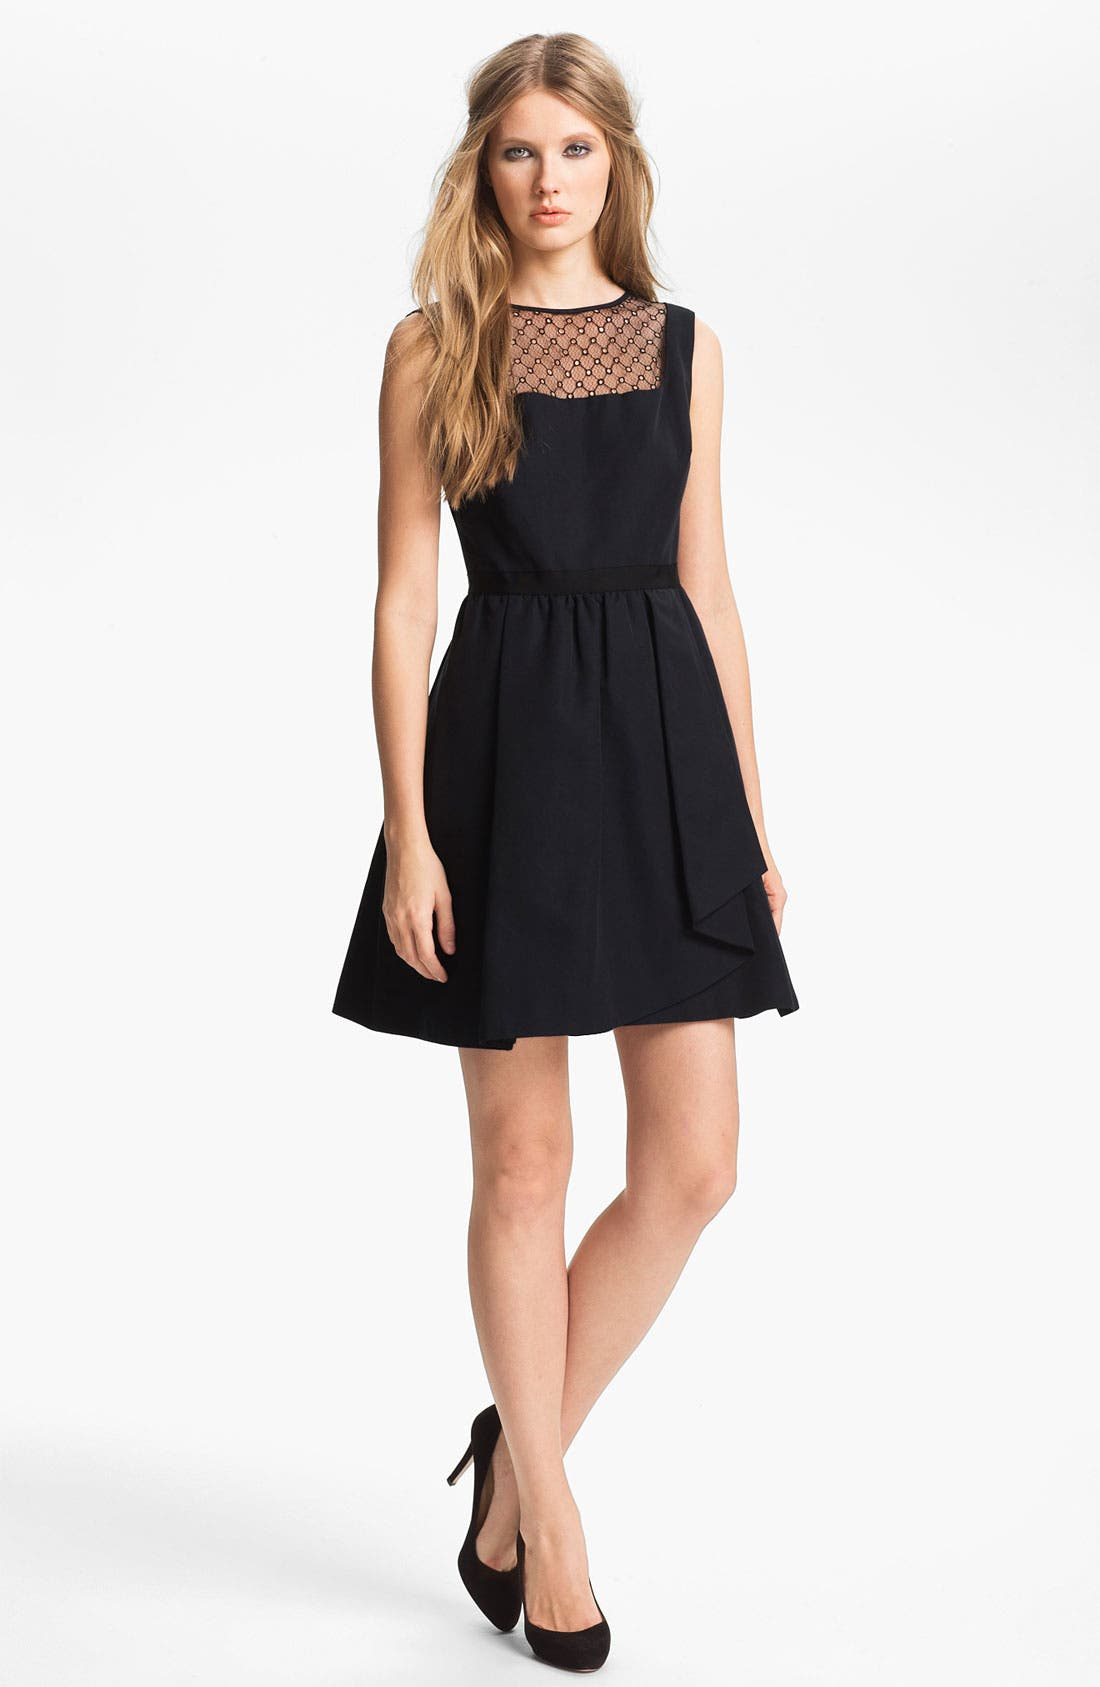 Alternate Image 1 Selected - Miss Wu Lace Yoke Faille Dress (Nordstrom Exclusive)